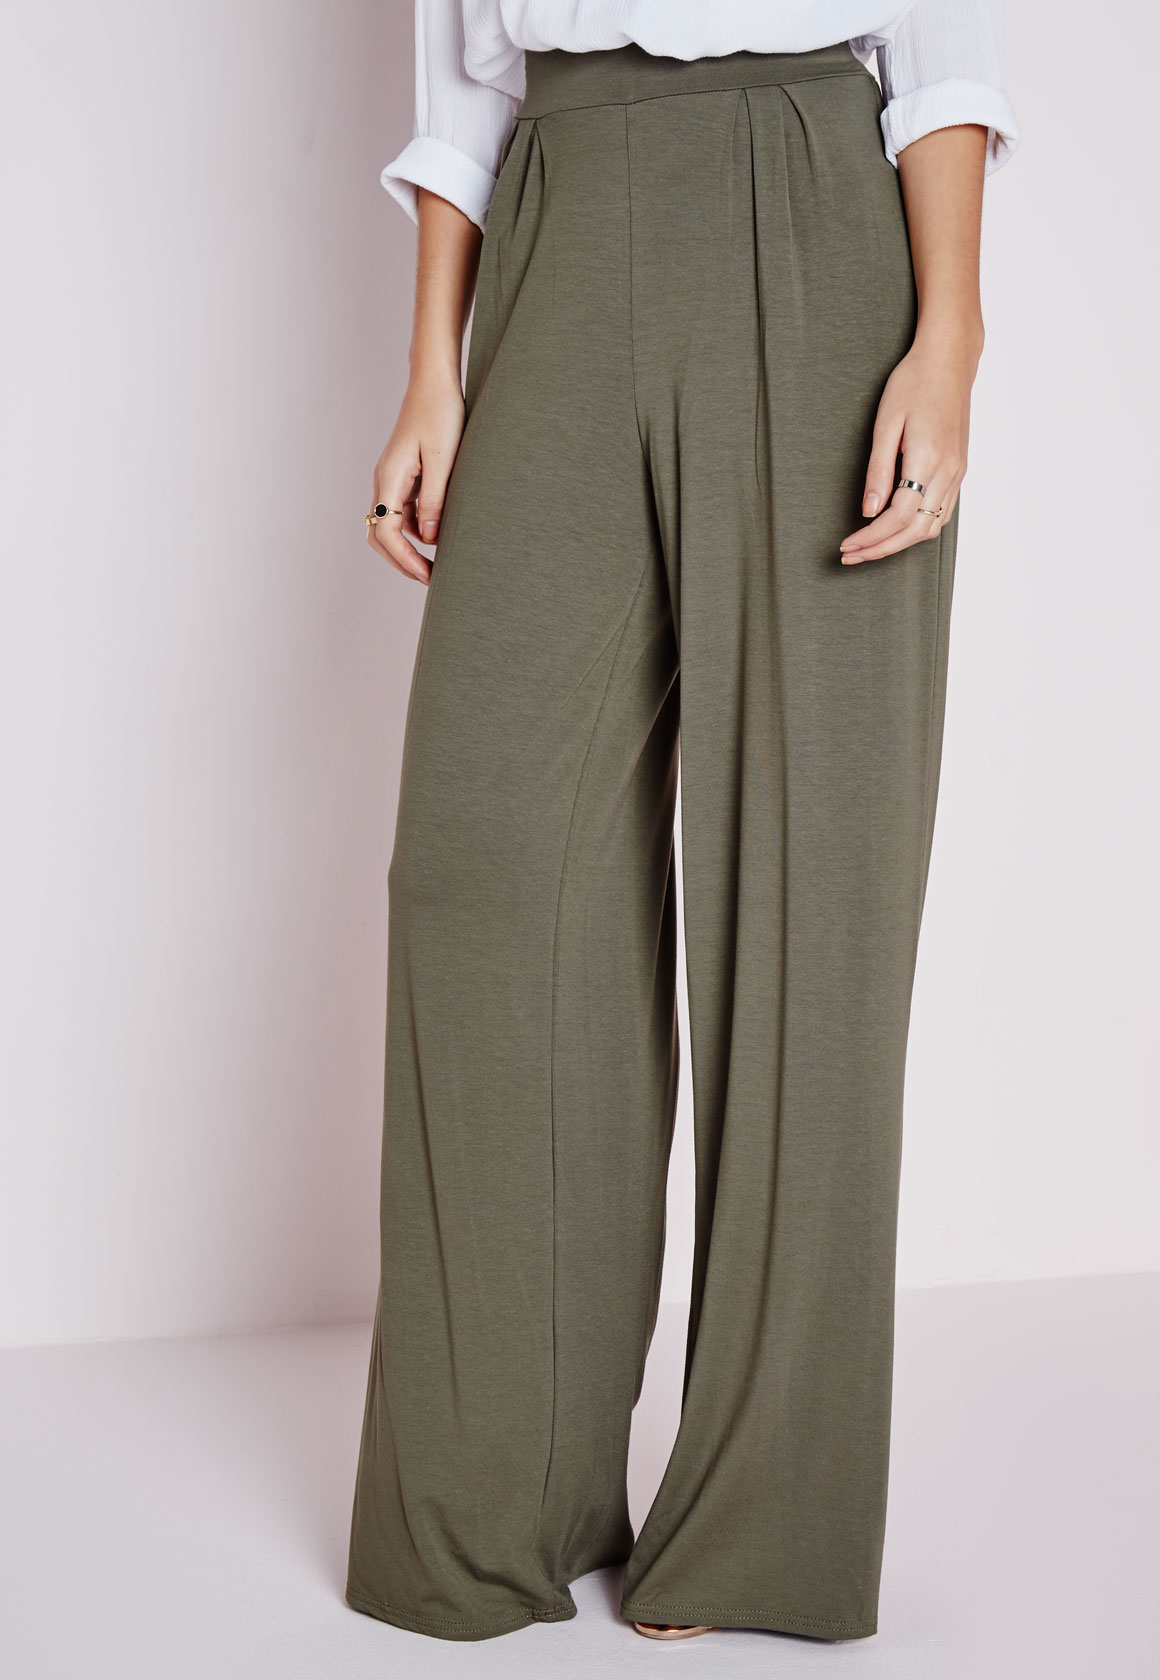 Shop our Collection of Women's Wide Leg Pants at membhobbdownload-zy.ga for the Latest Designer Brands & Styles. FREE SHIPPING AVAILABLE!